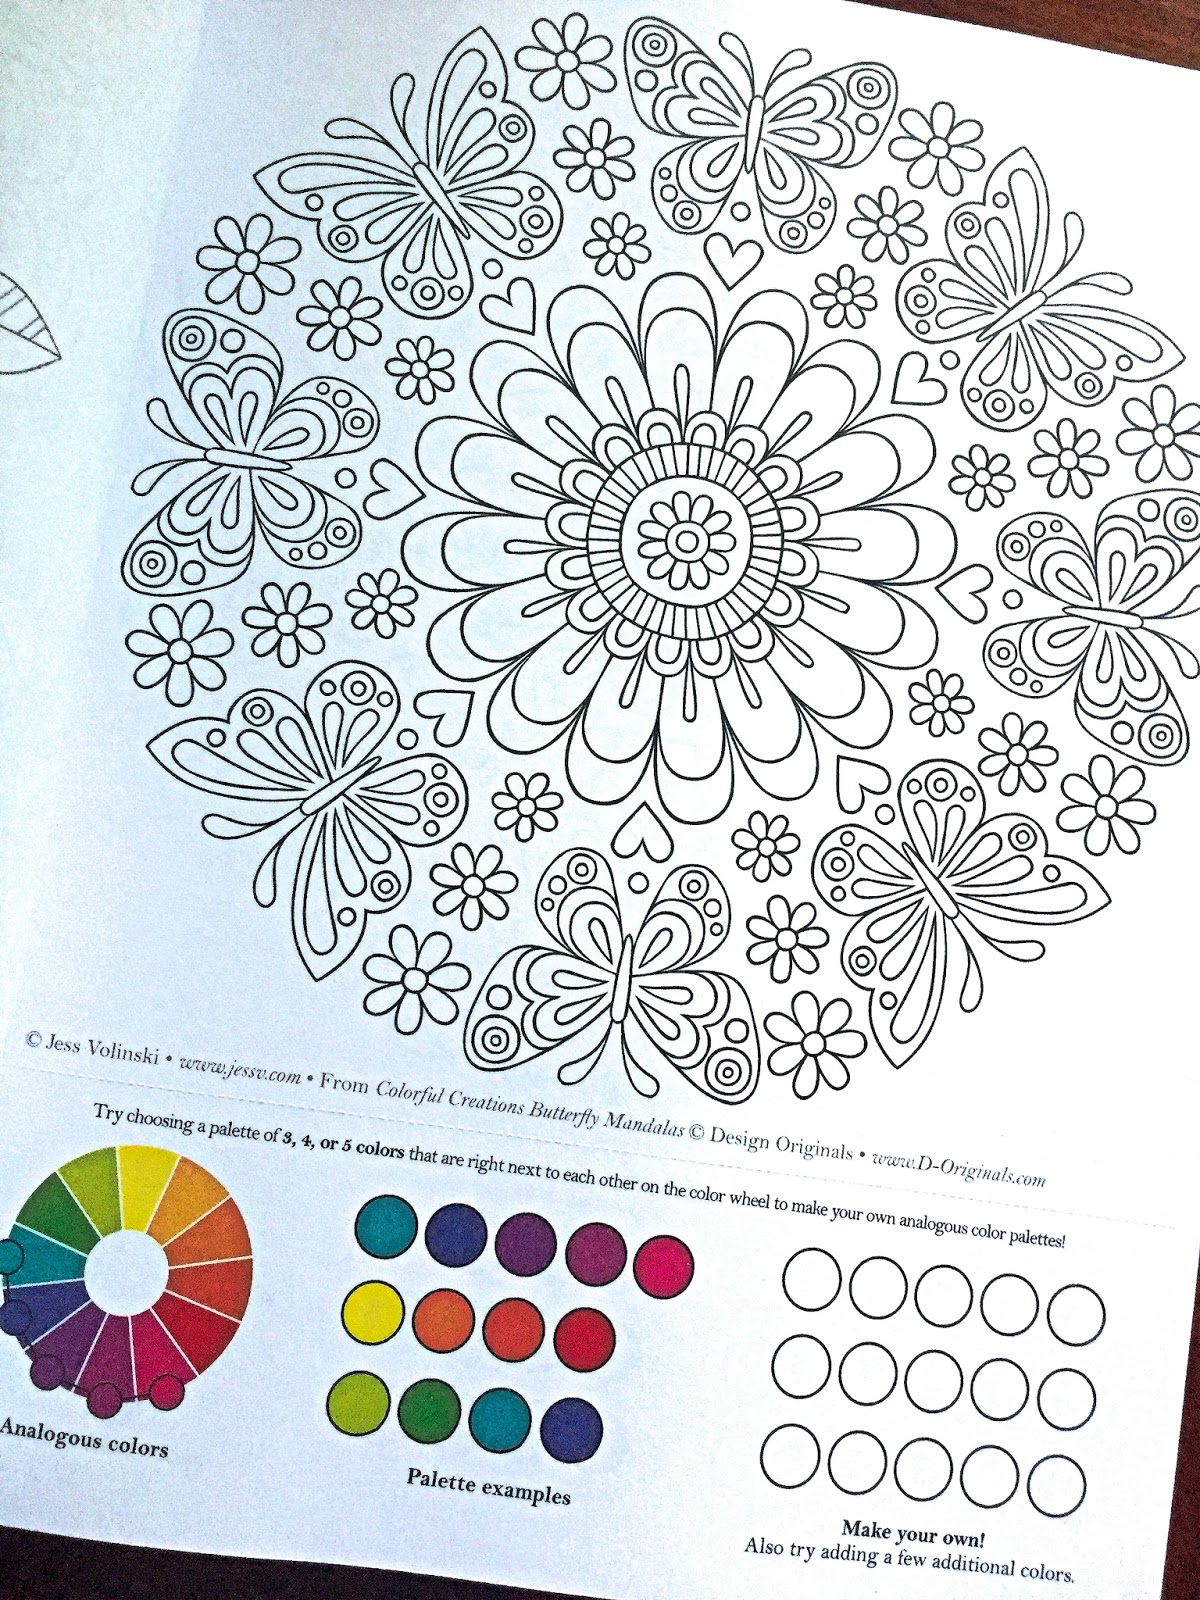 I Also Love The Colored Pages That Aid In Showing You A Completed Mandala Follow Them Or Dont But They Are There If Want Outside Inspiration